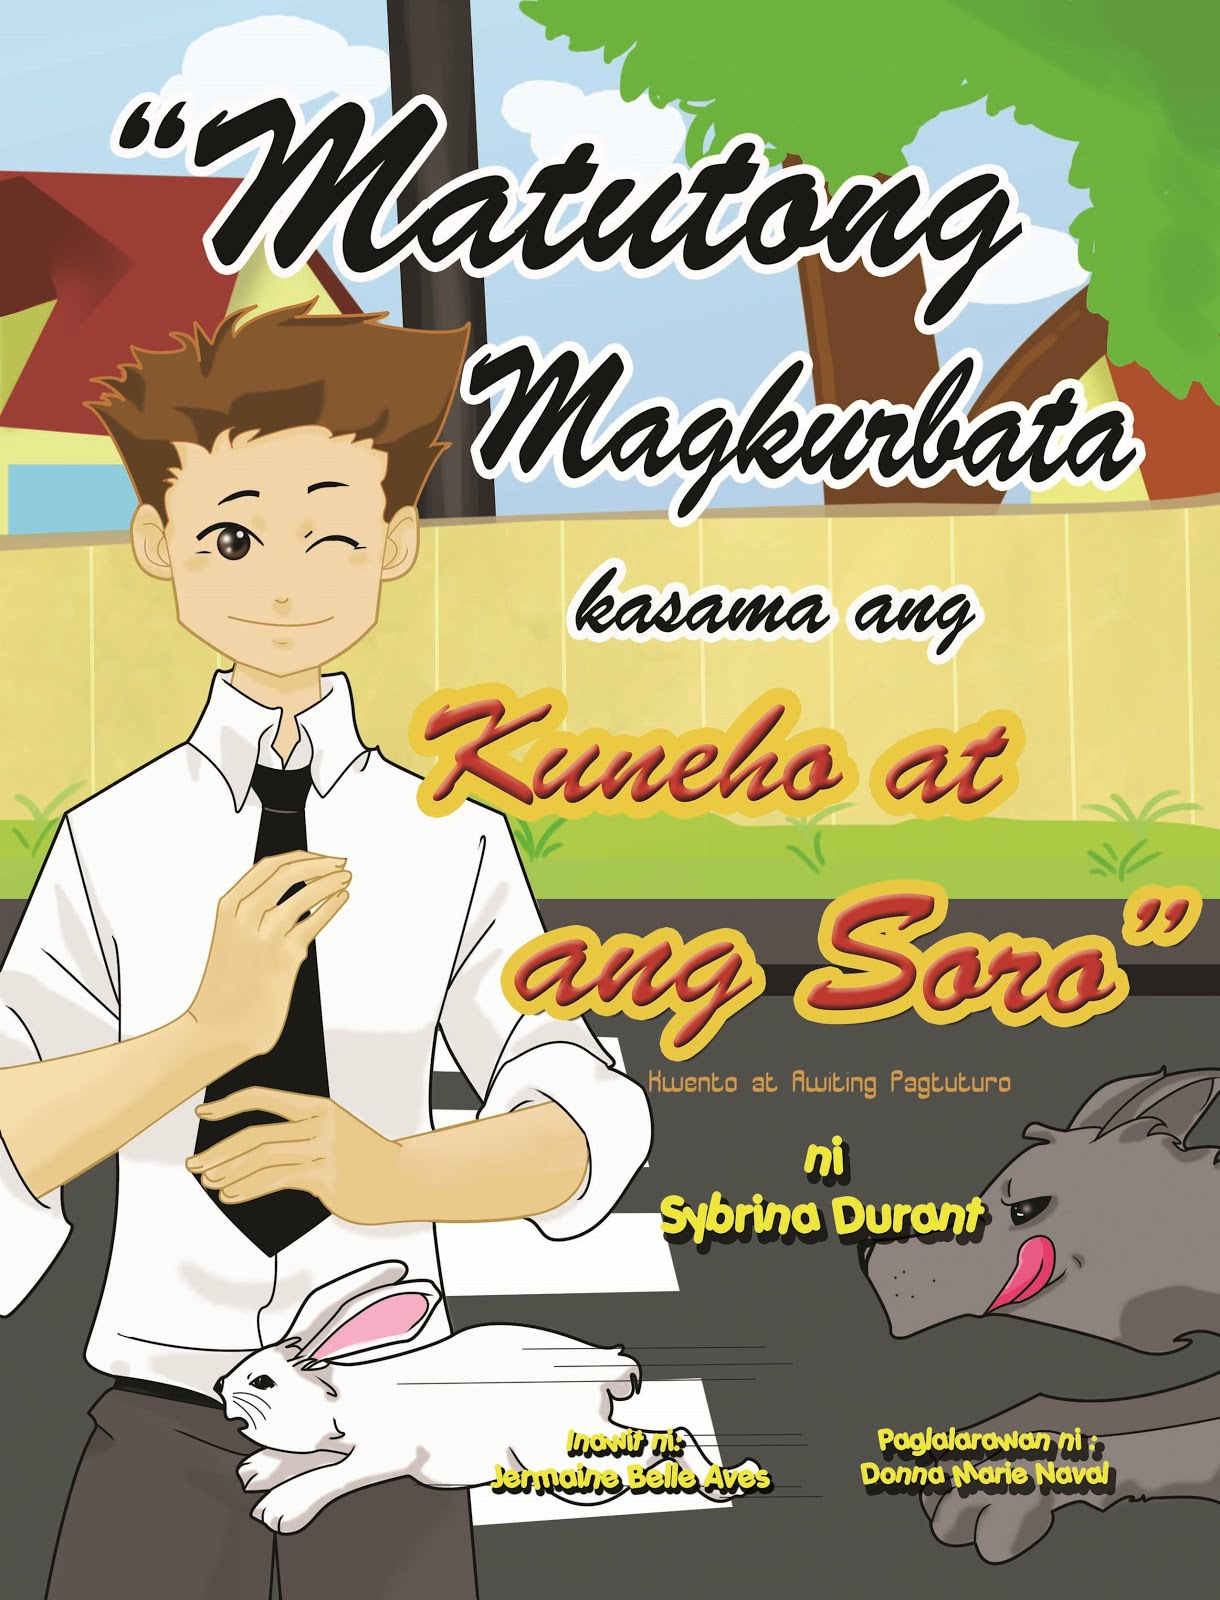 Learn To Tie a Tie With The Rabbit and the Fox - Tagalog